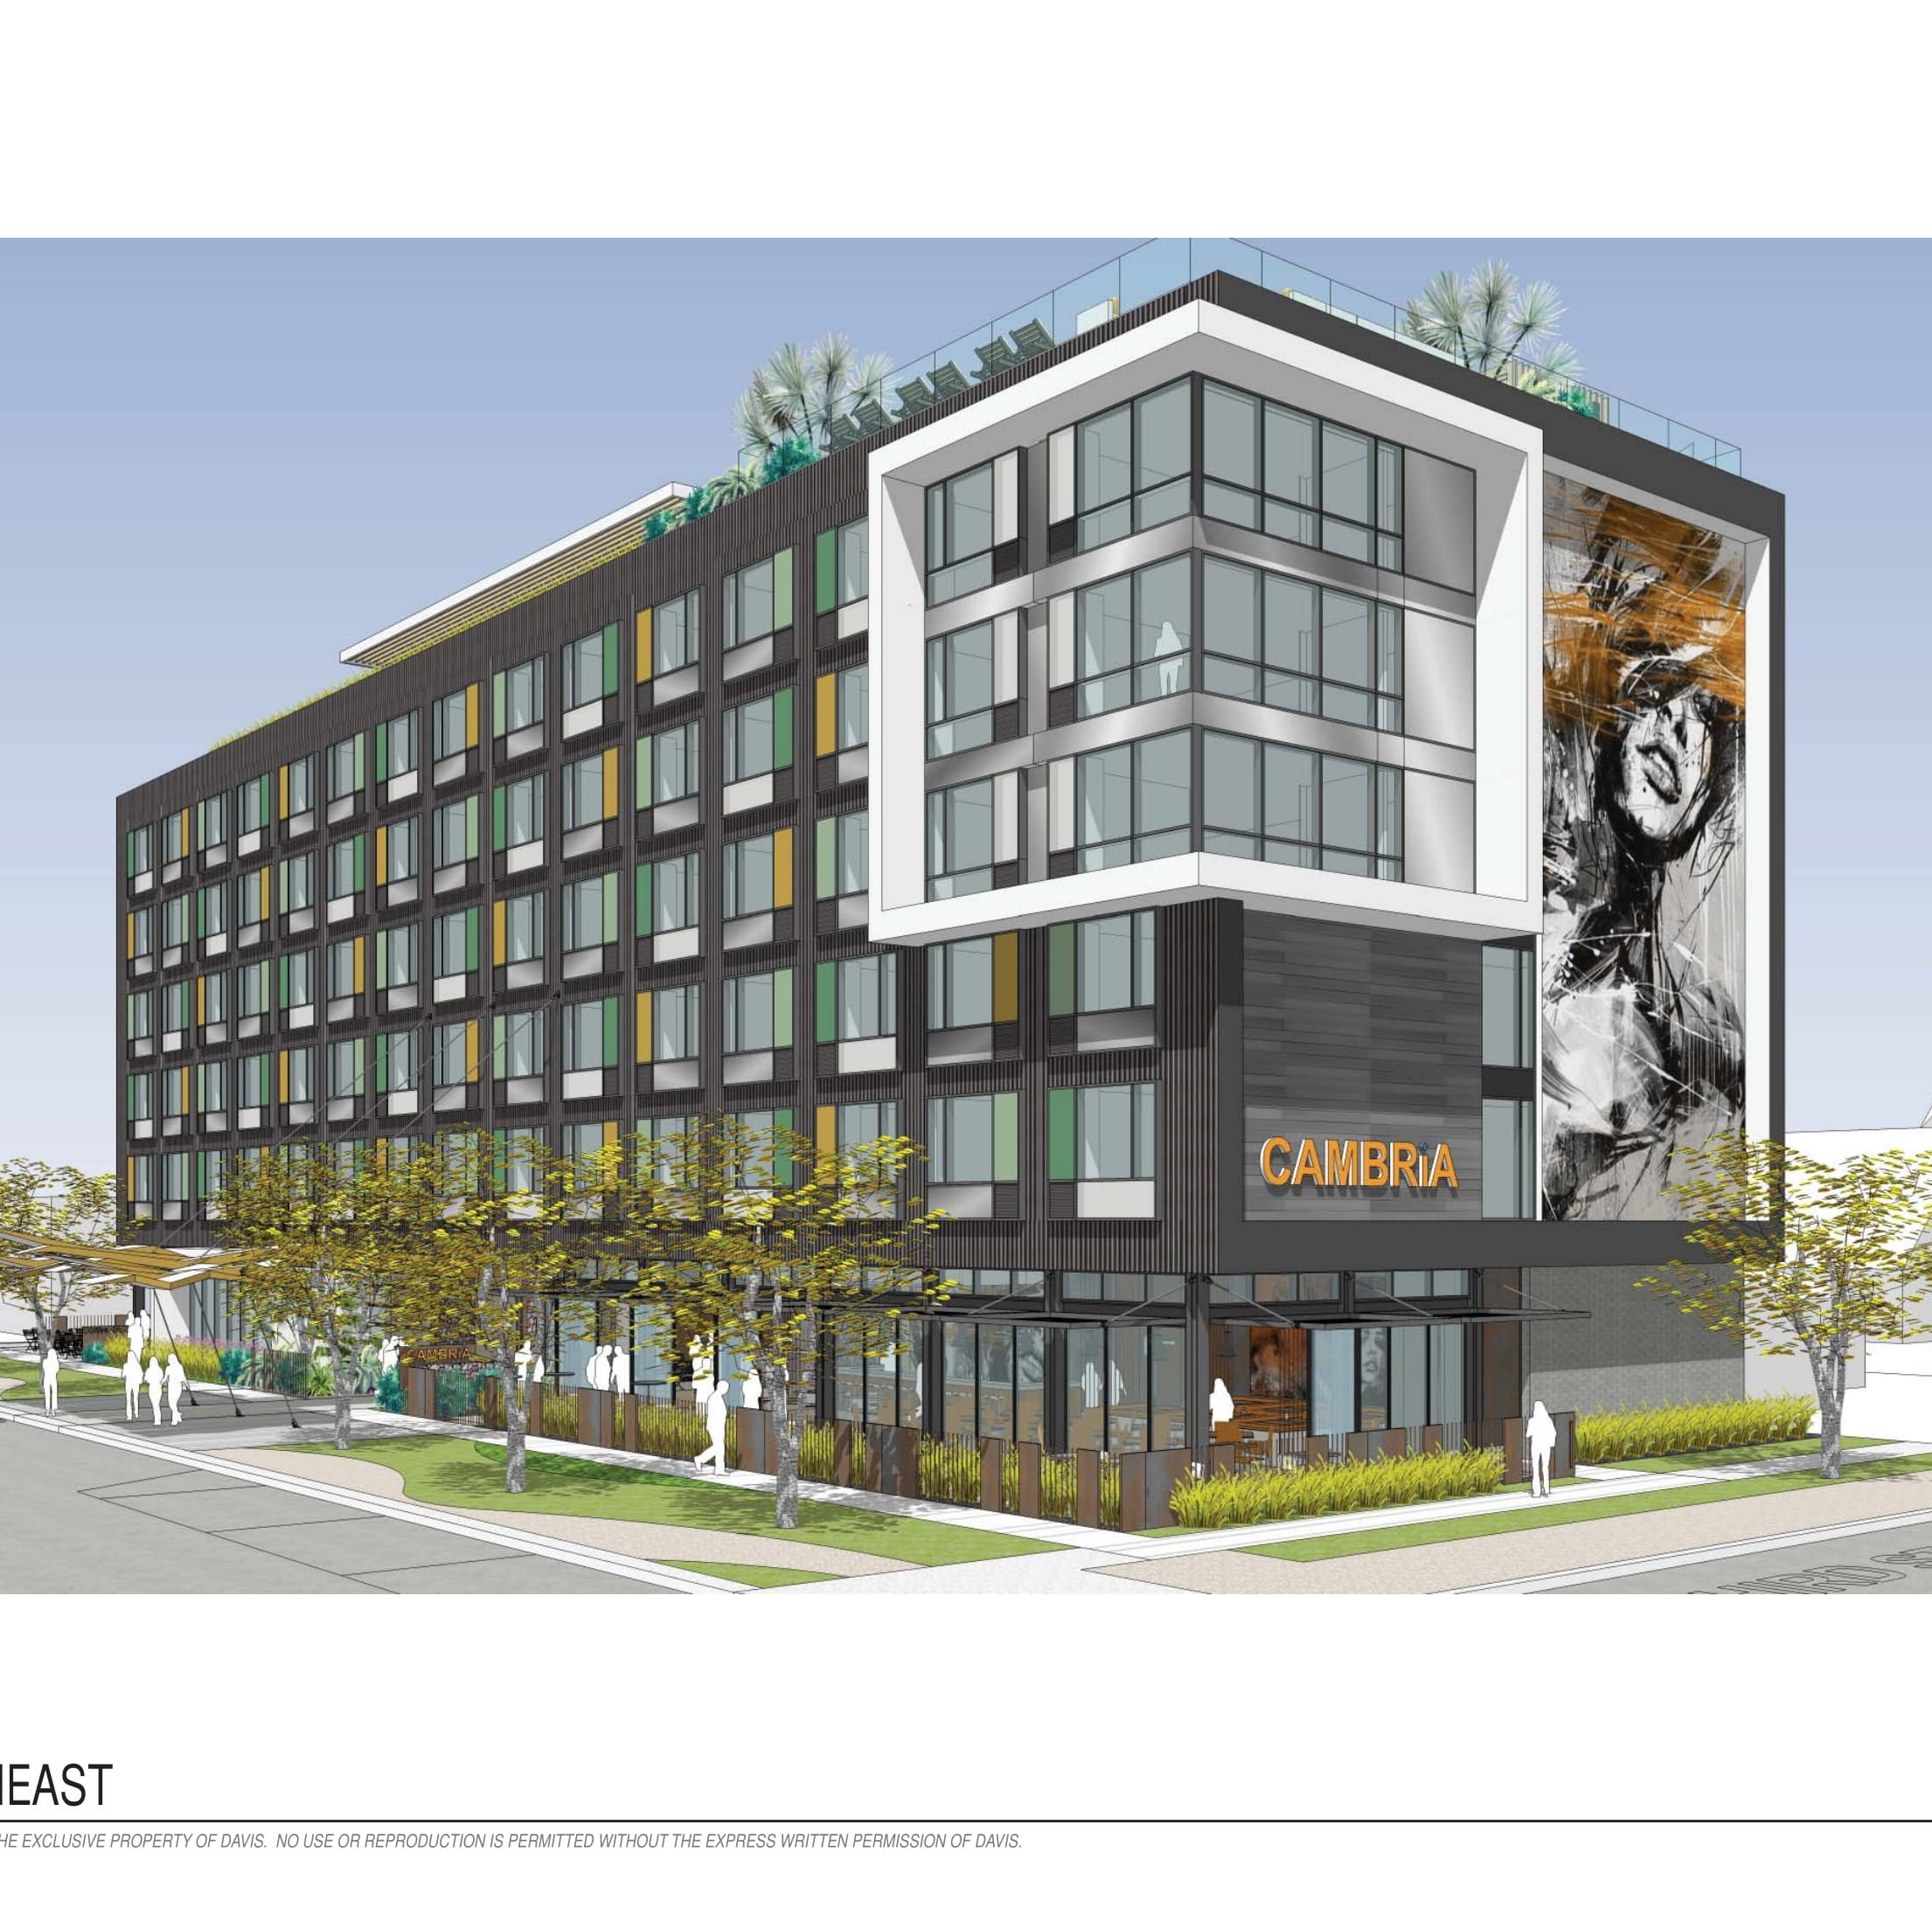 New hotel going up in Phoenix's Roosevelt Row